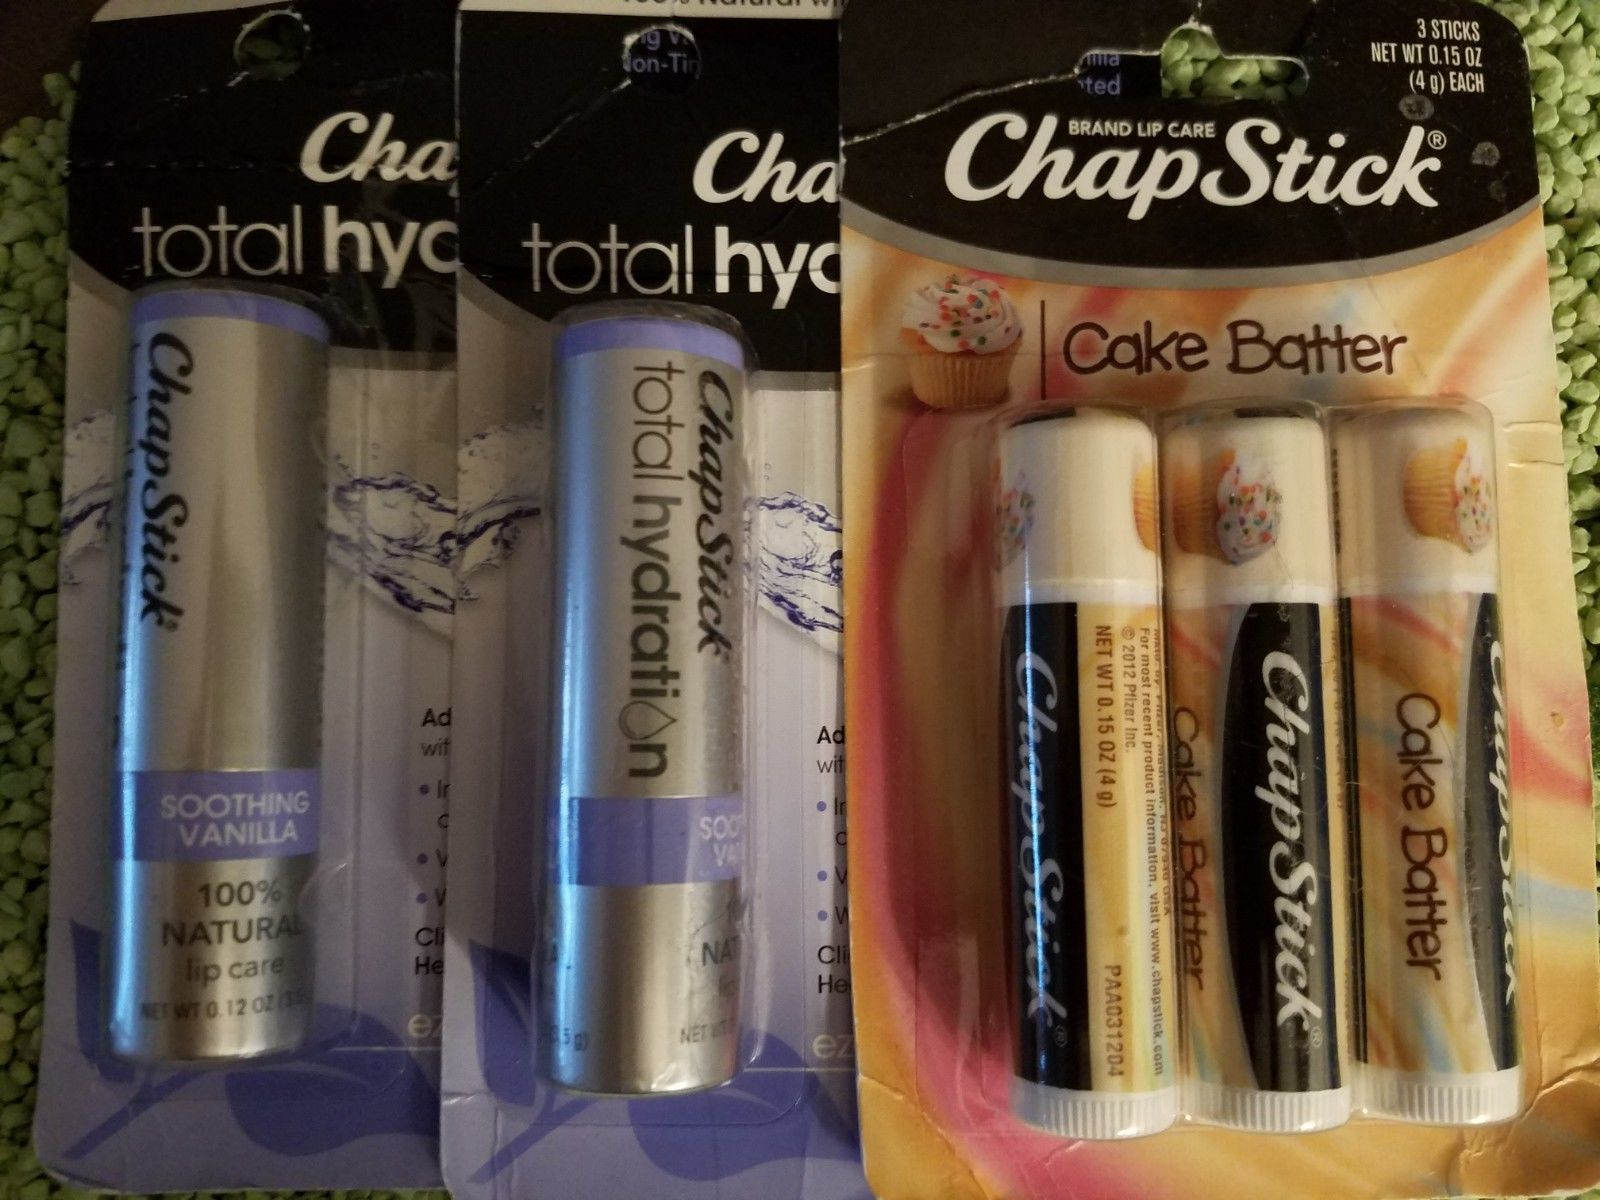 LIMITED EDITION CHAPSTICK CAKE BATTER+Original+HELLO KITTY BALM+37 TOTAL *READ*